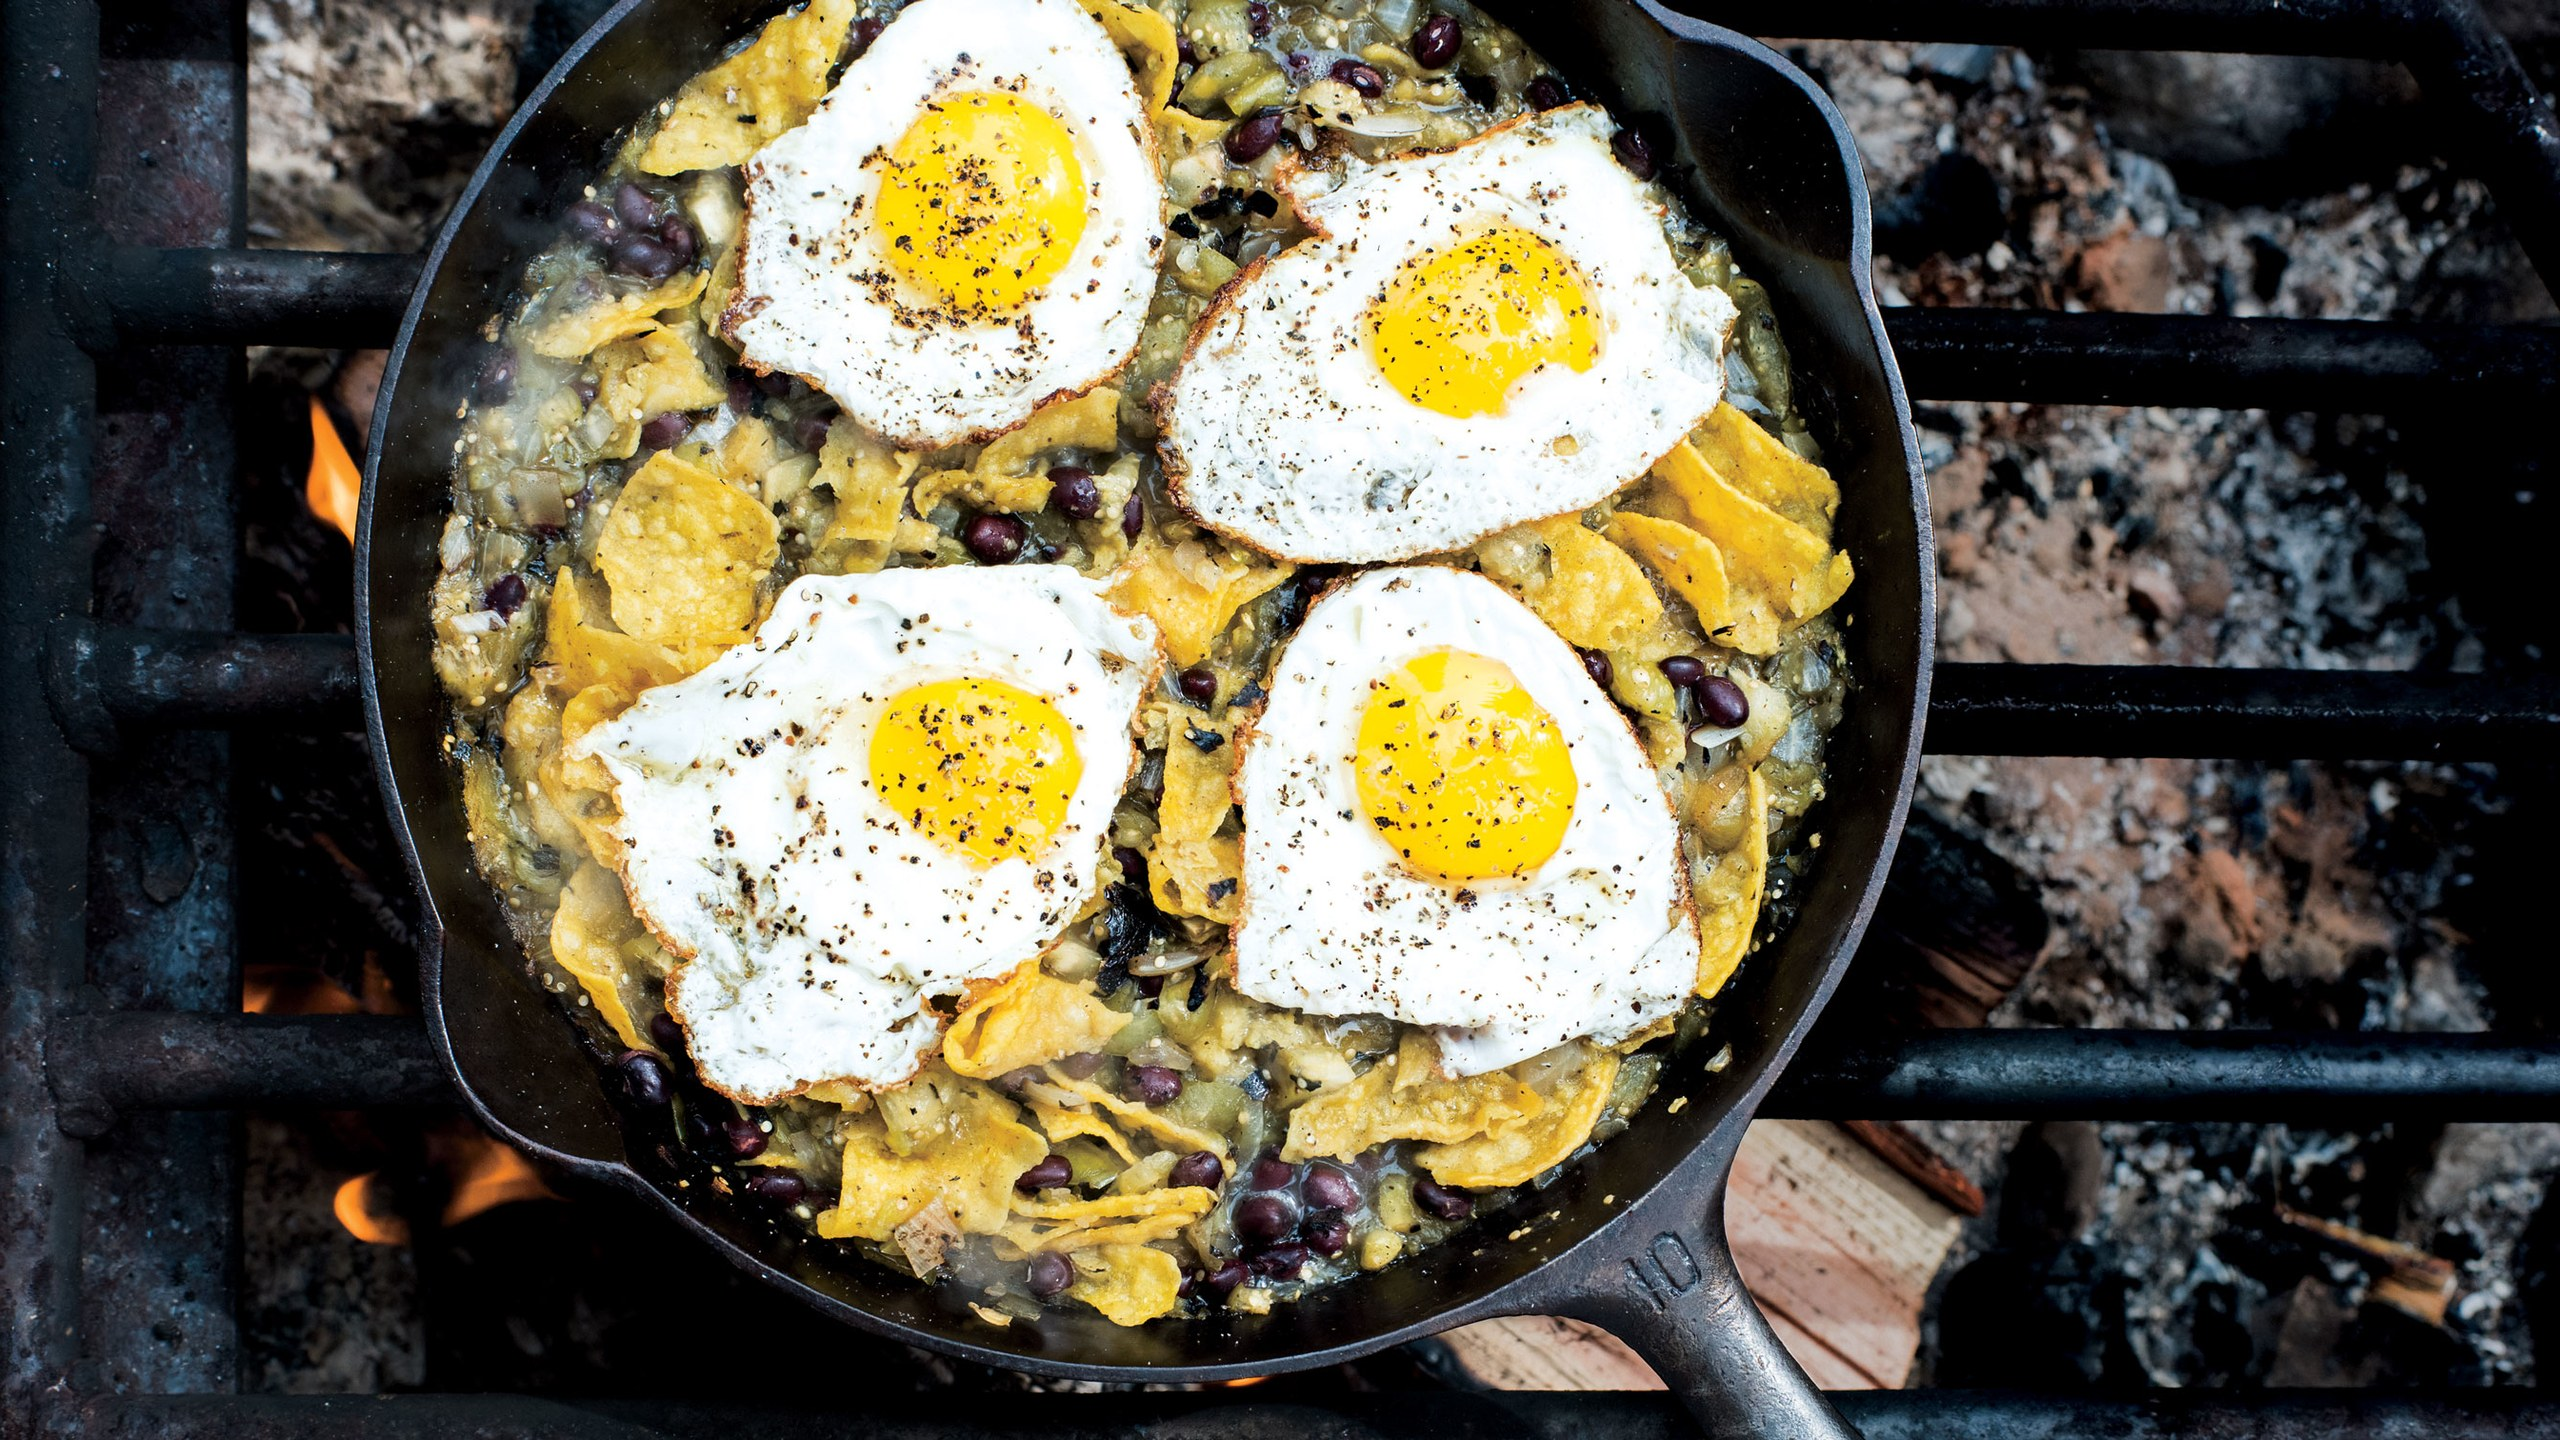 Chilaquiles with Blistered Tomatillo Salsa and Eggs Gourmet Camping Recipes for Your Glamping Adventure